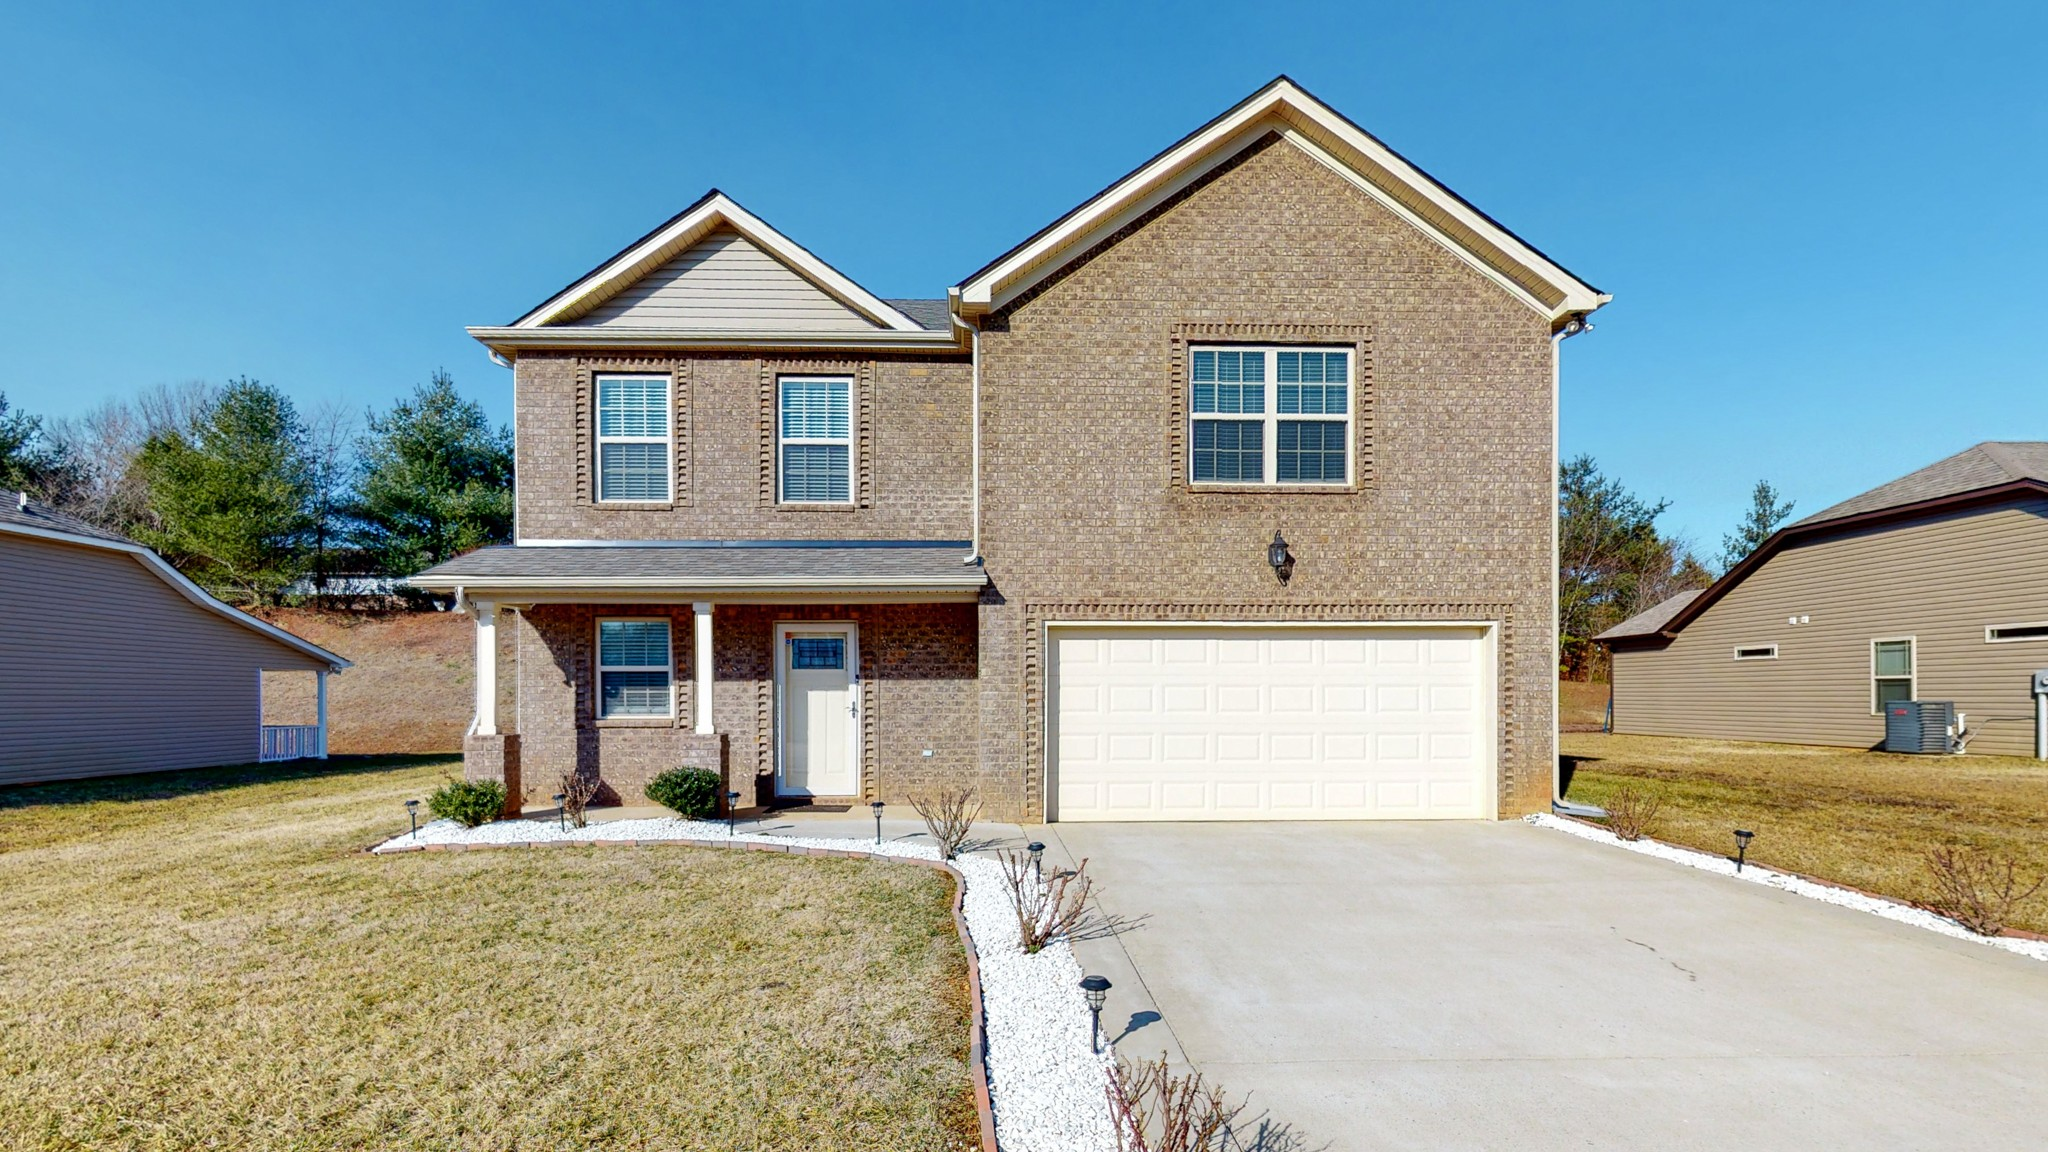 453 Golf Club Ln Property Photo - Springfield, TN real estate listing